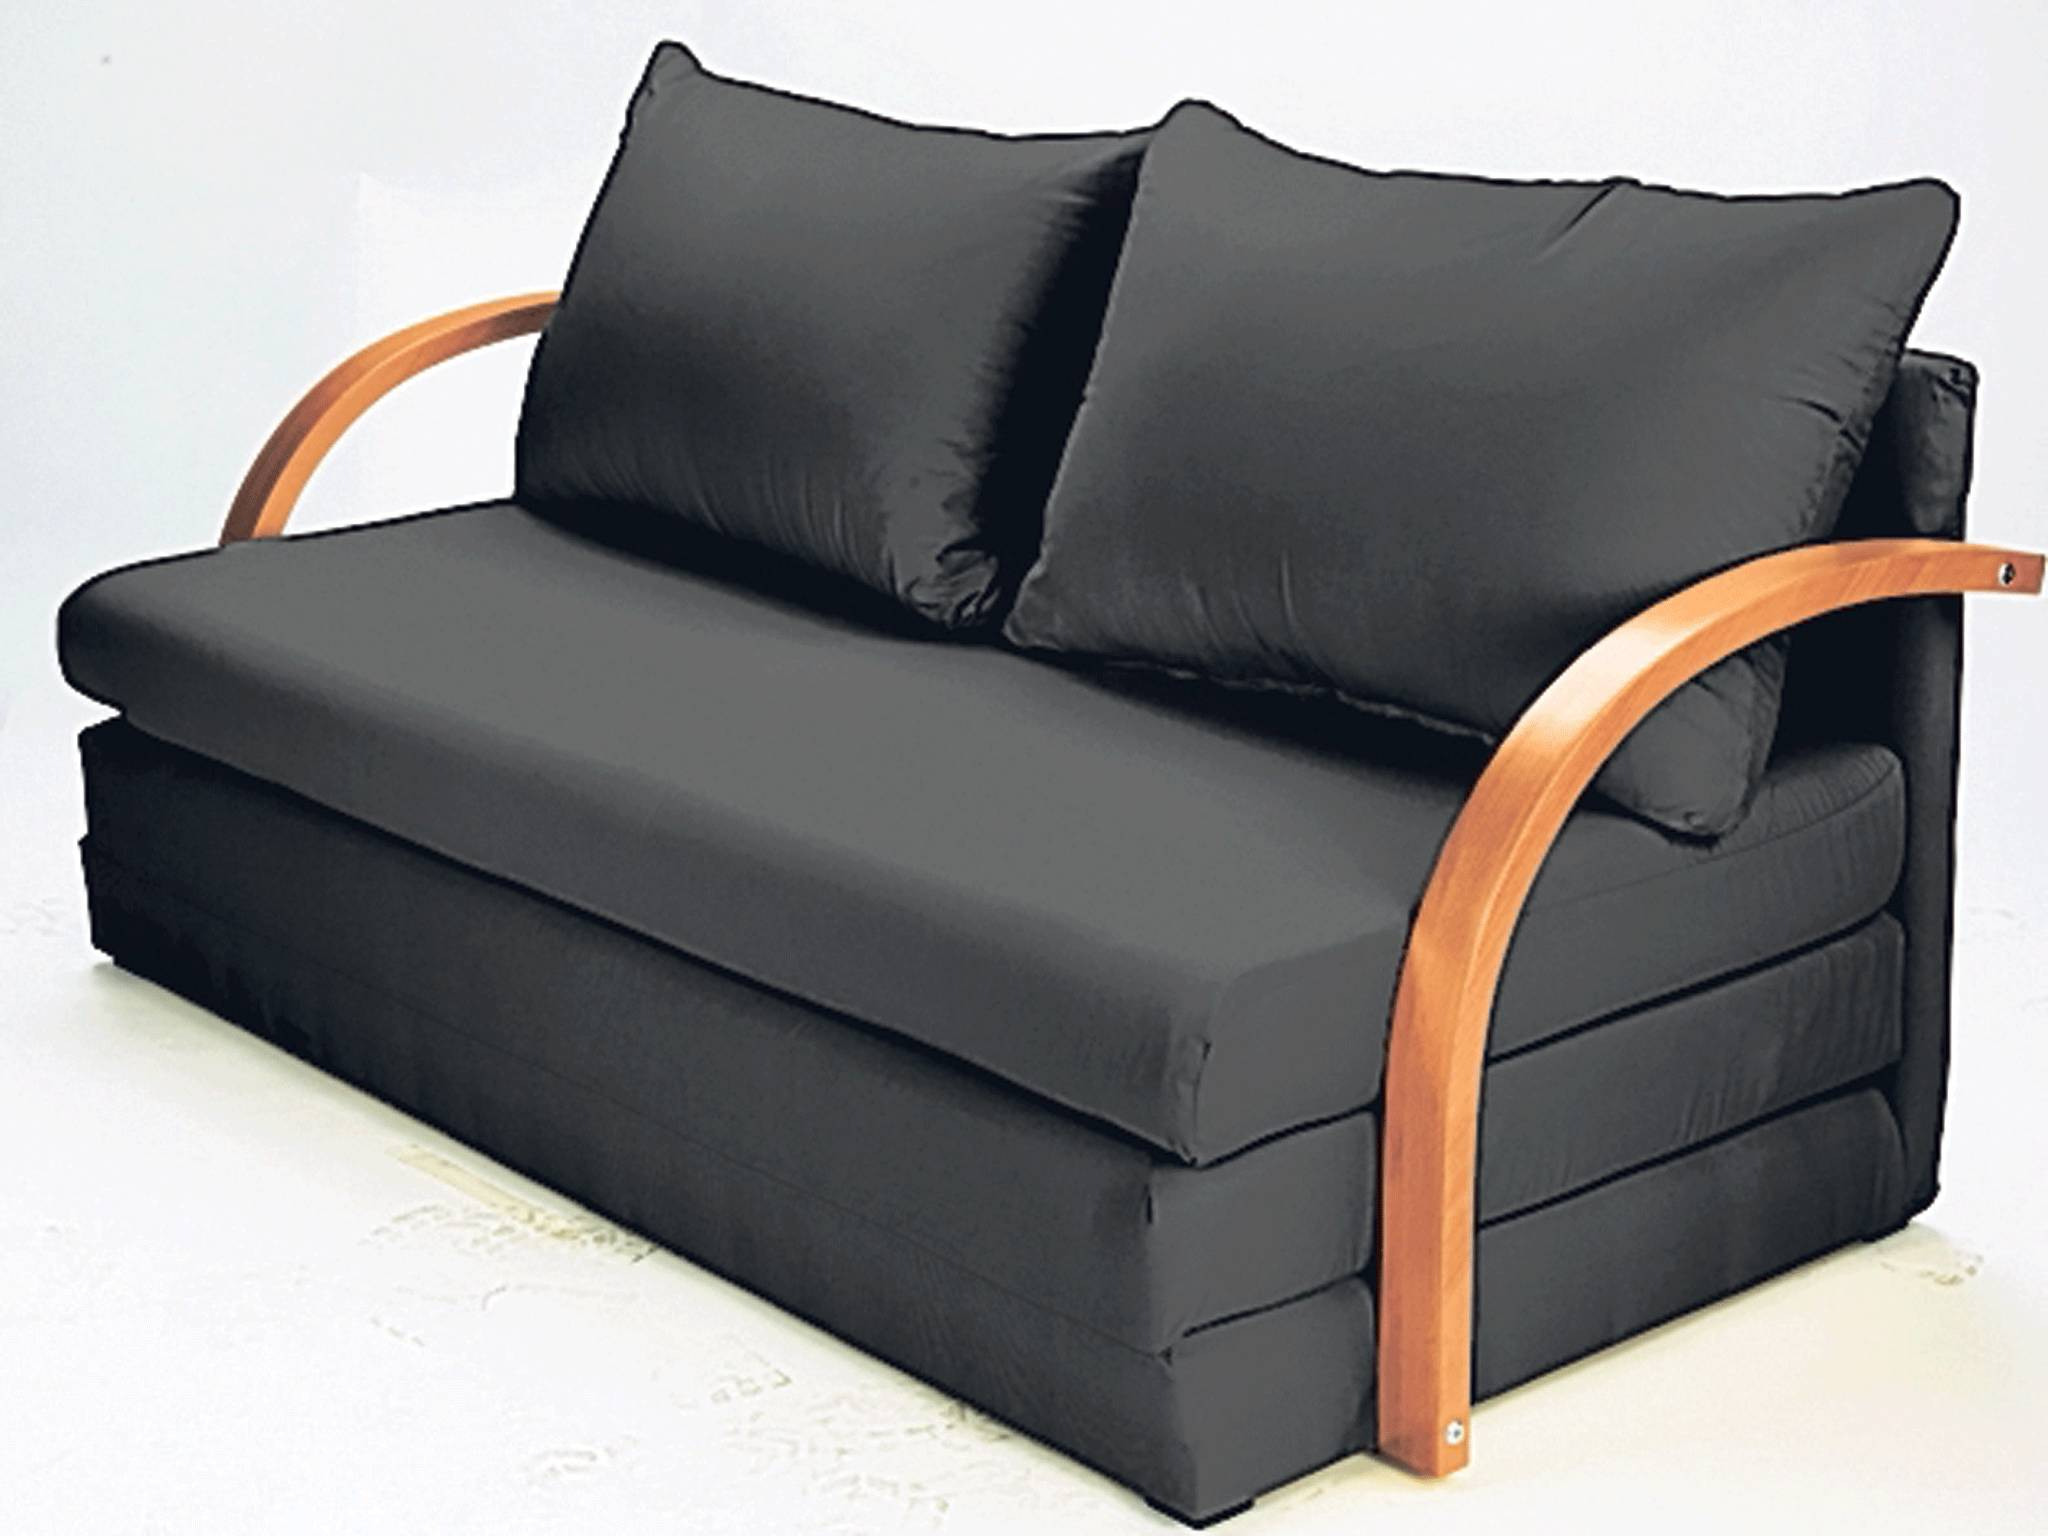 Modern Sofas That Turn Into Beds HomesFeed